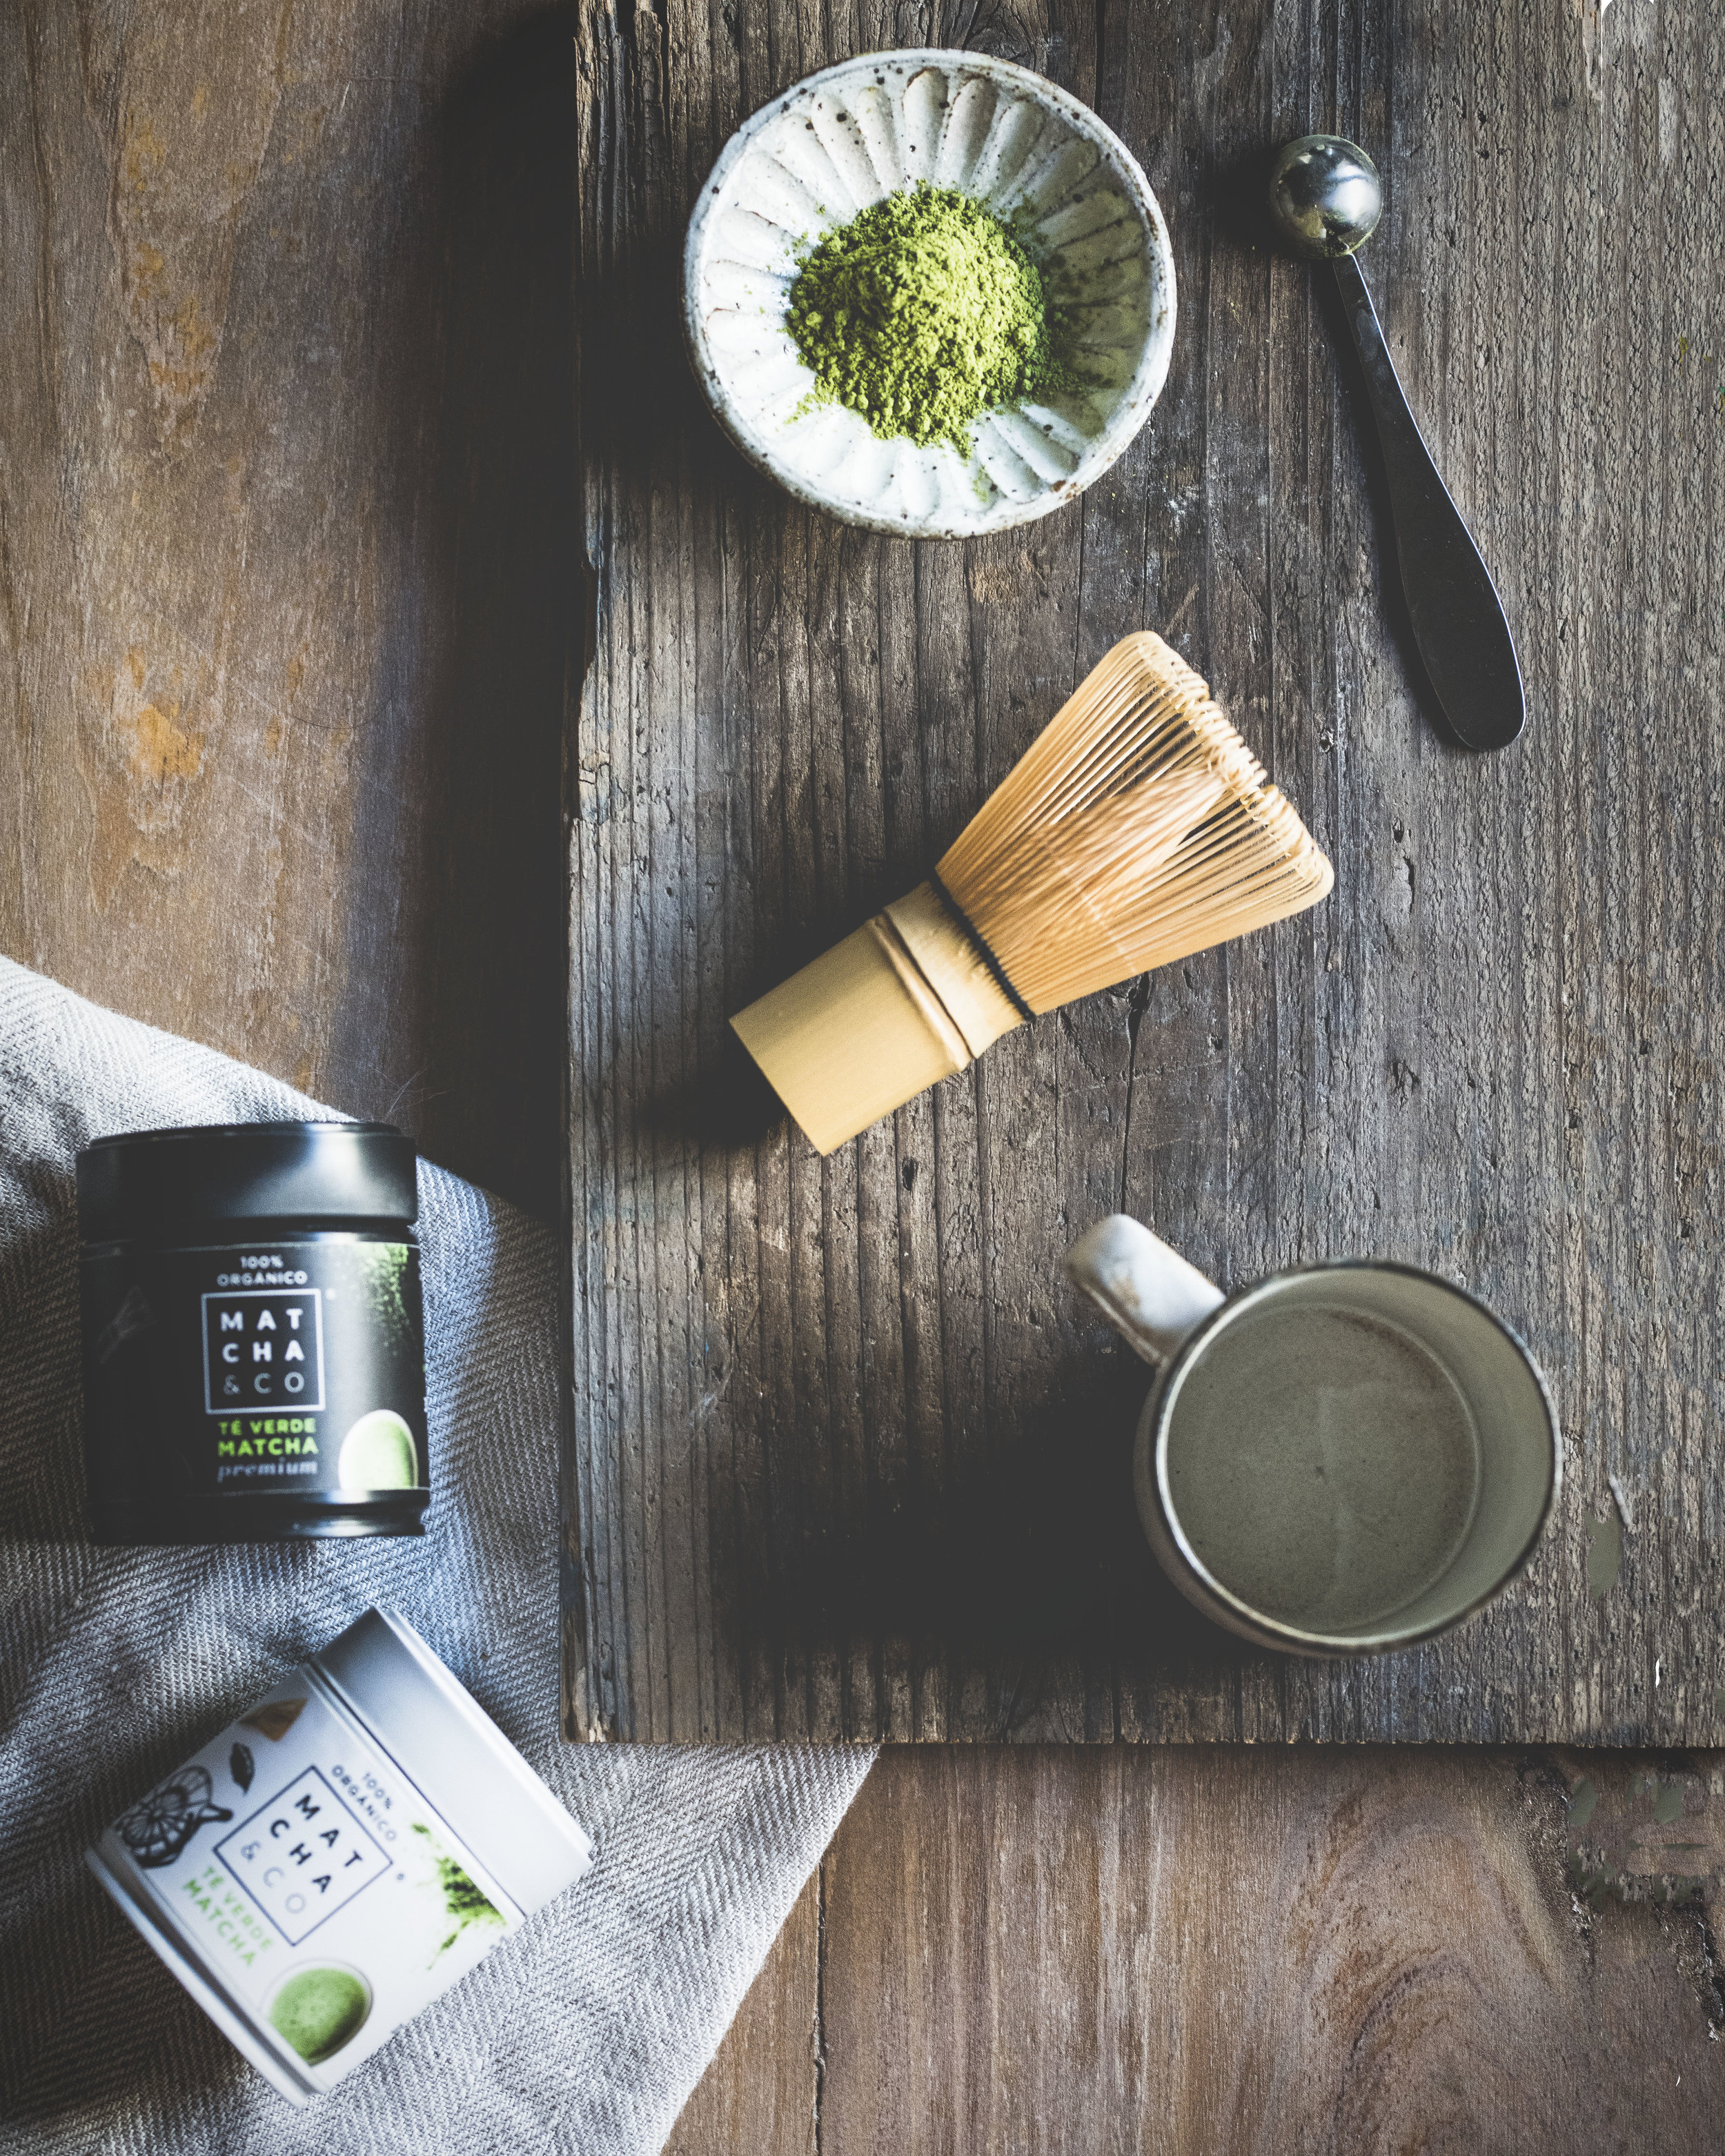 Preparing matcha at home with Matcha & Co